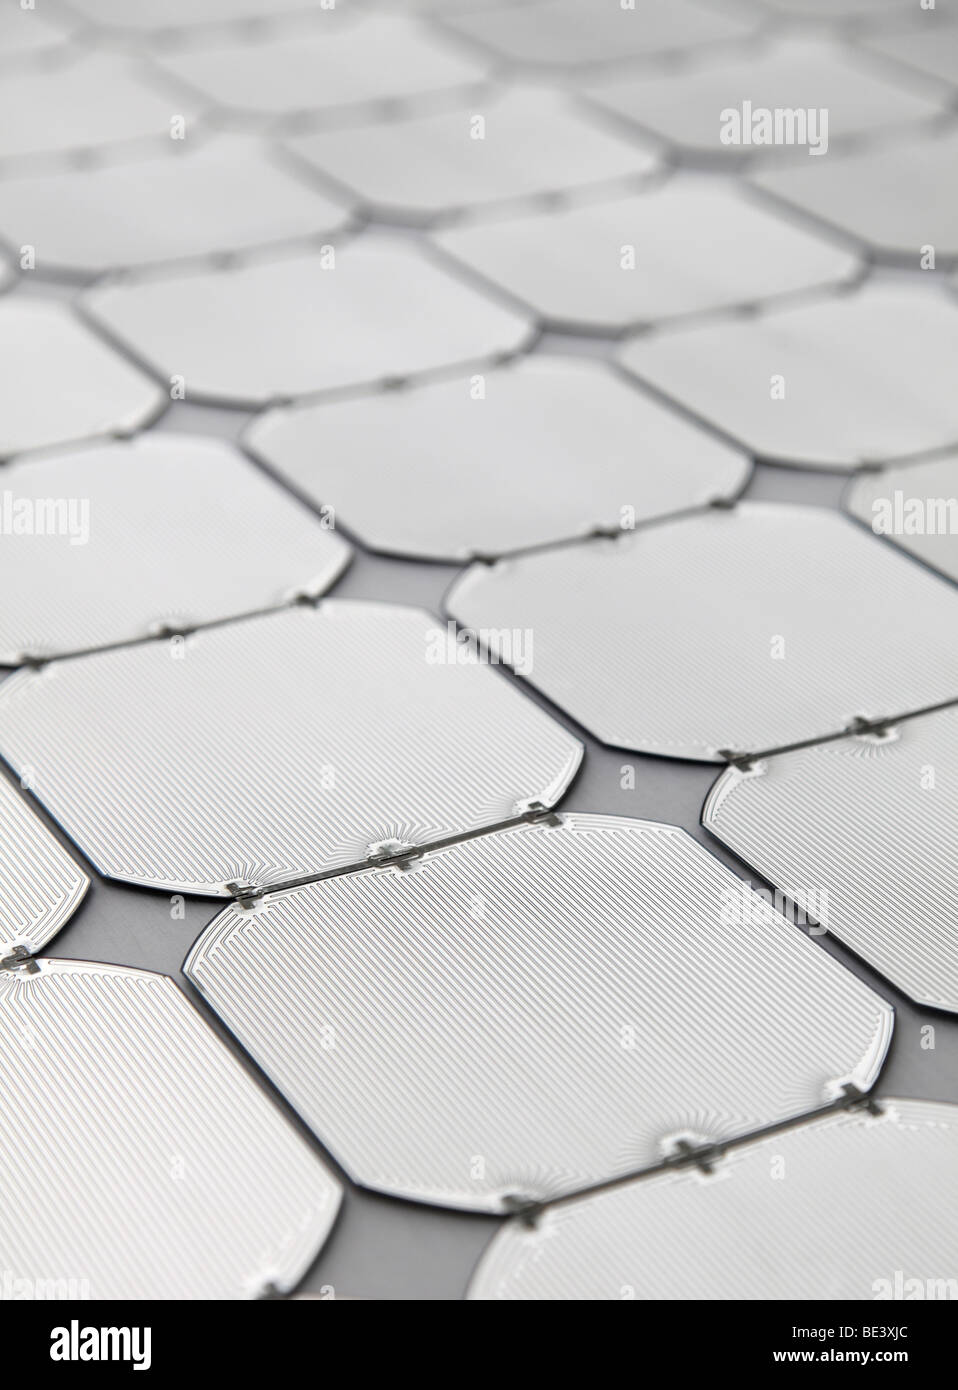 Solon SE: production of solar panels. Electric circuits on solar cells, BERLIN, GERMANY - Stock Image